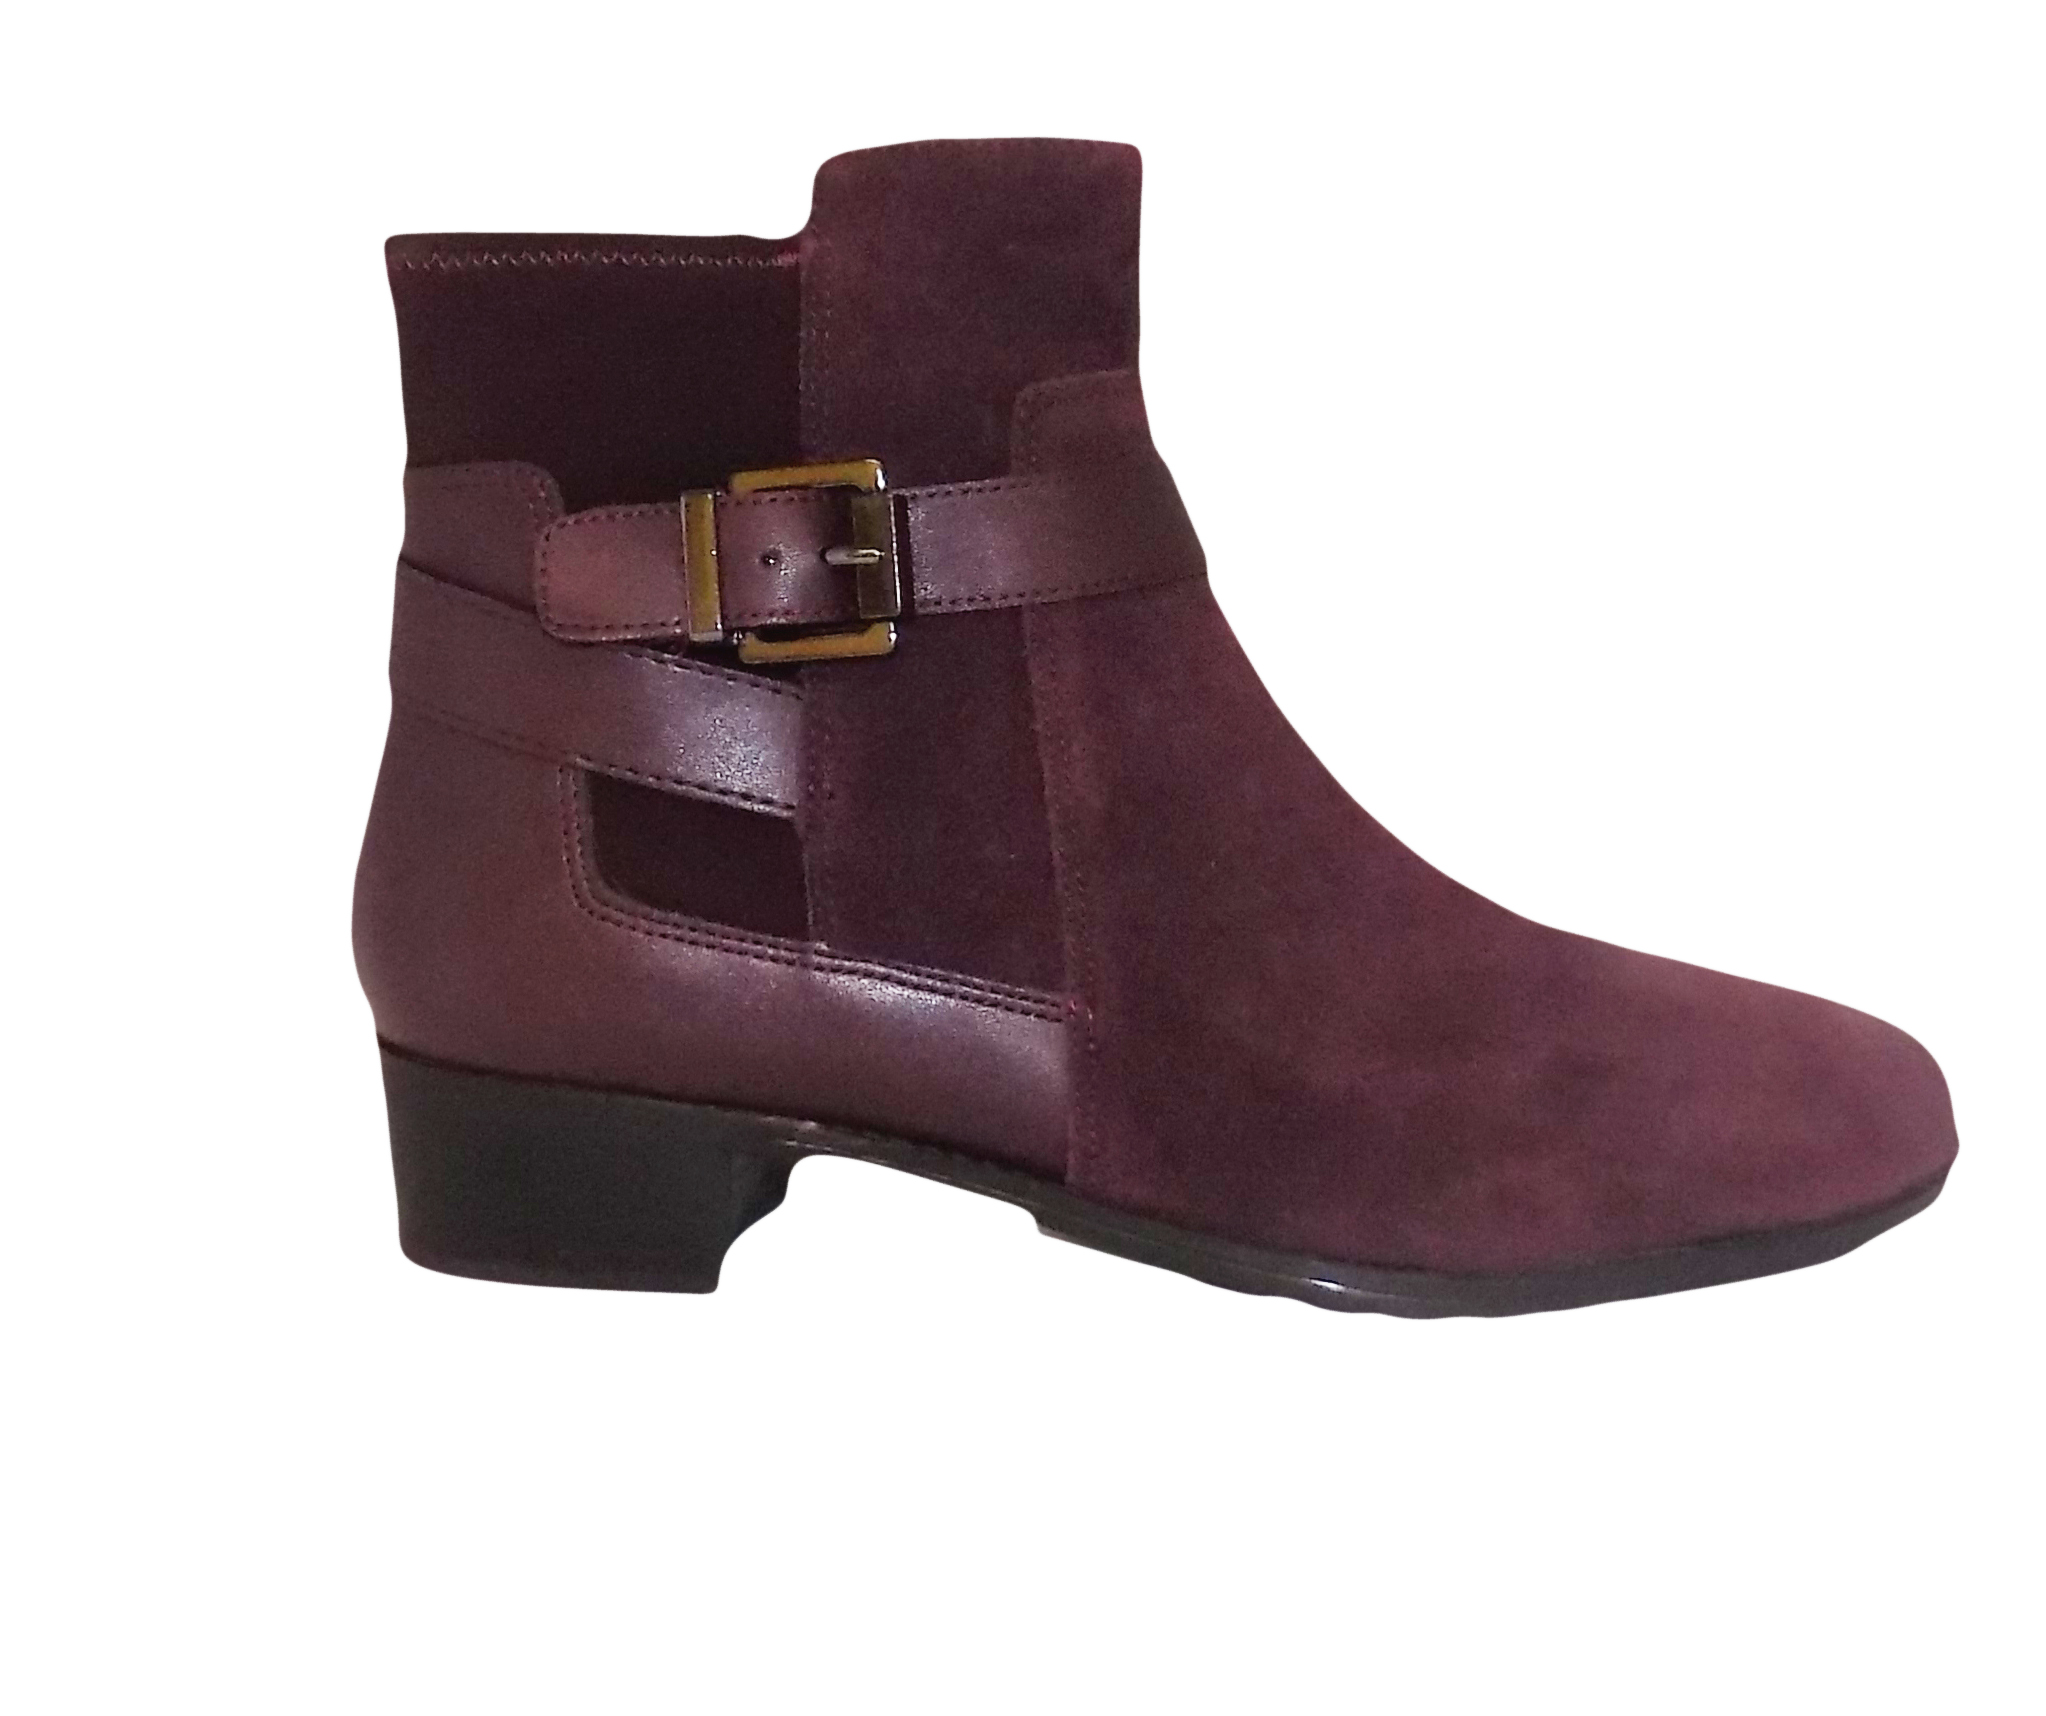 clearance manchester great sale cheap countdown package Isaac Mizrahi Suede Ankle Boots under $60 cheap online clearance brand new unisex discount prices CG5aP